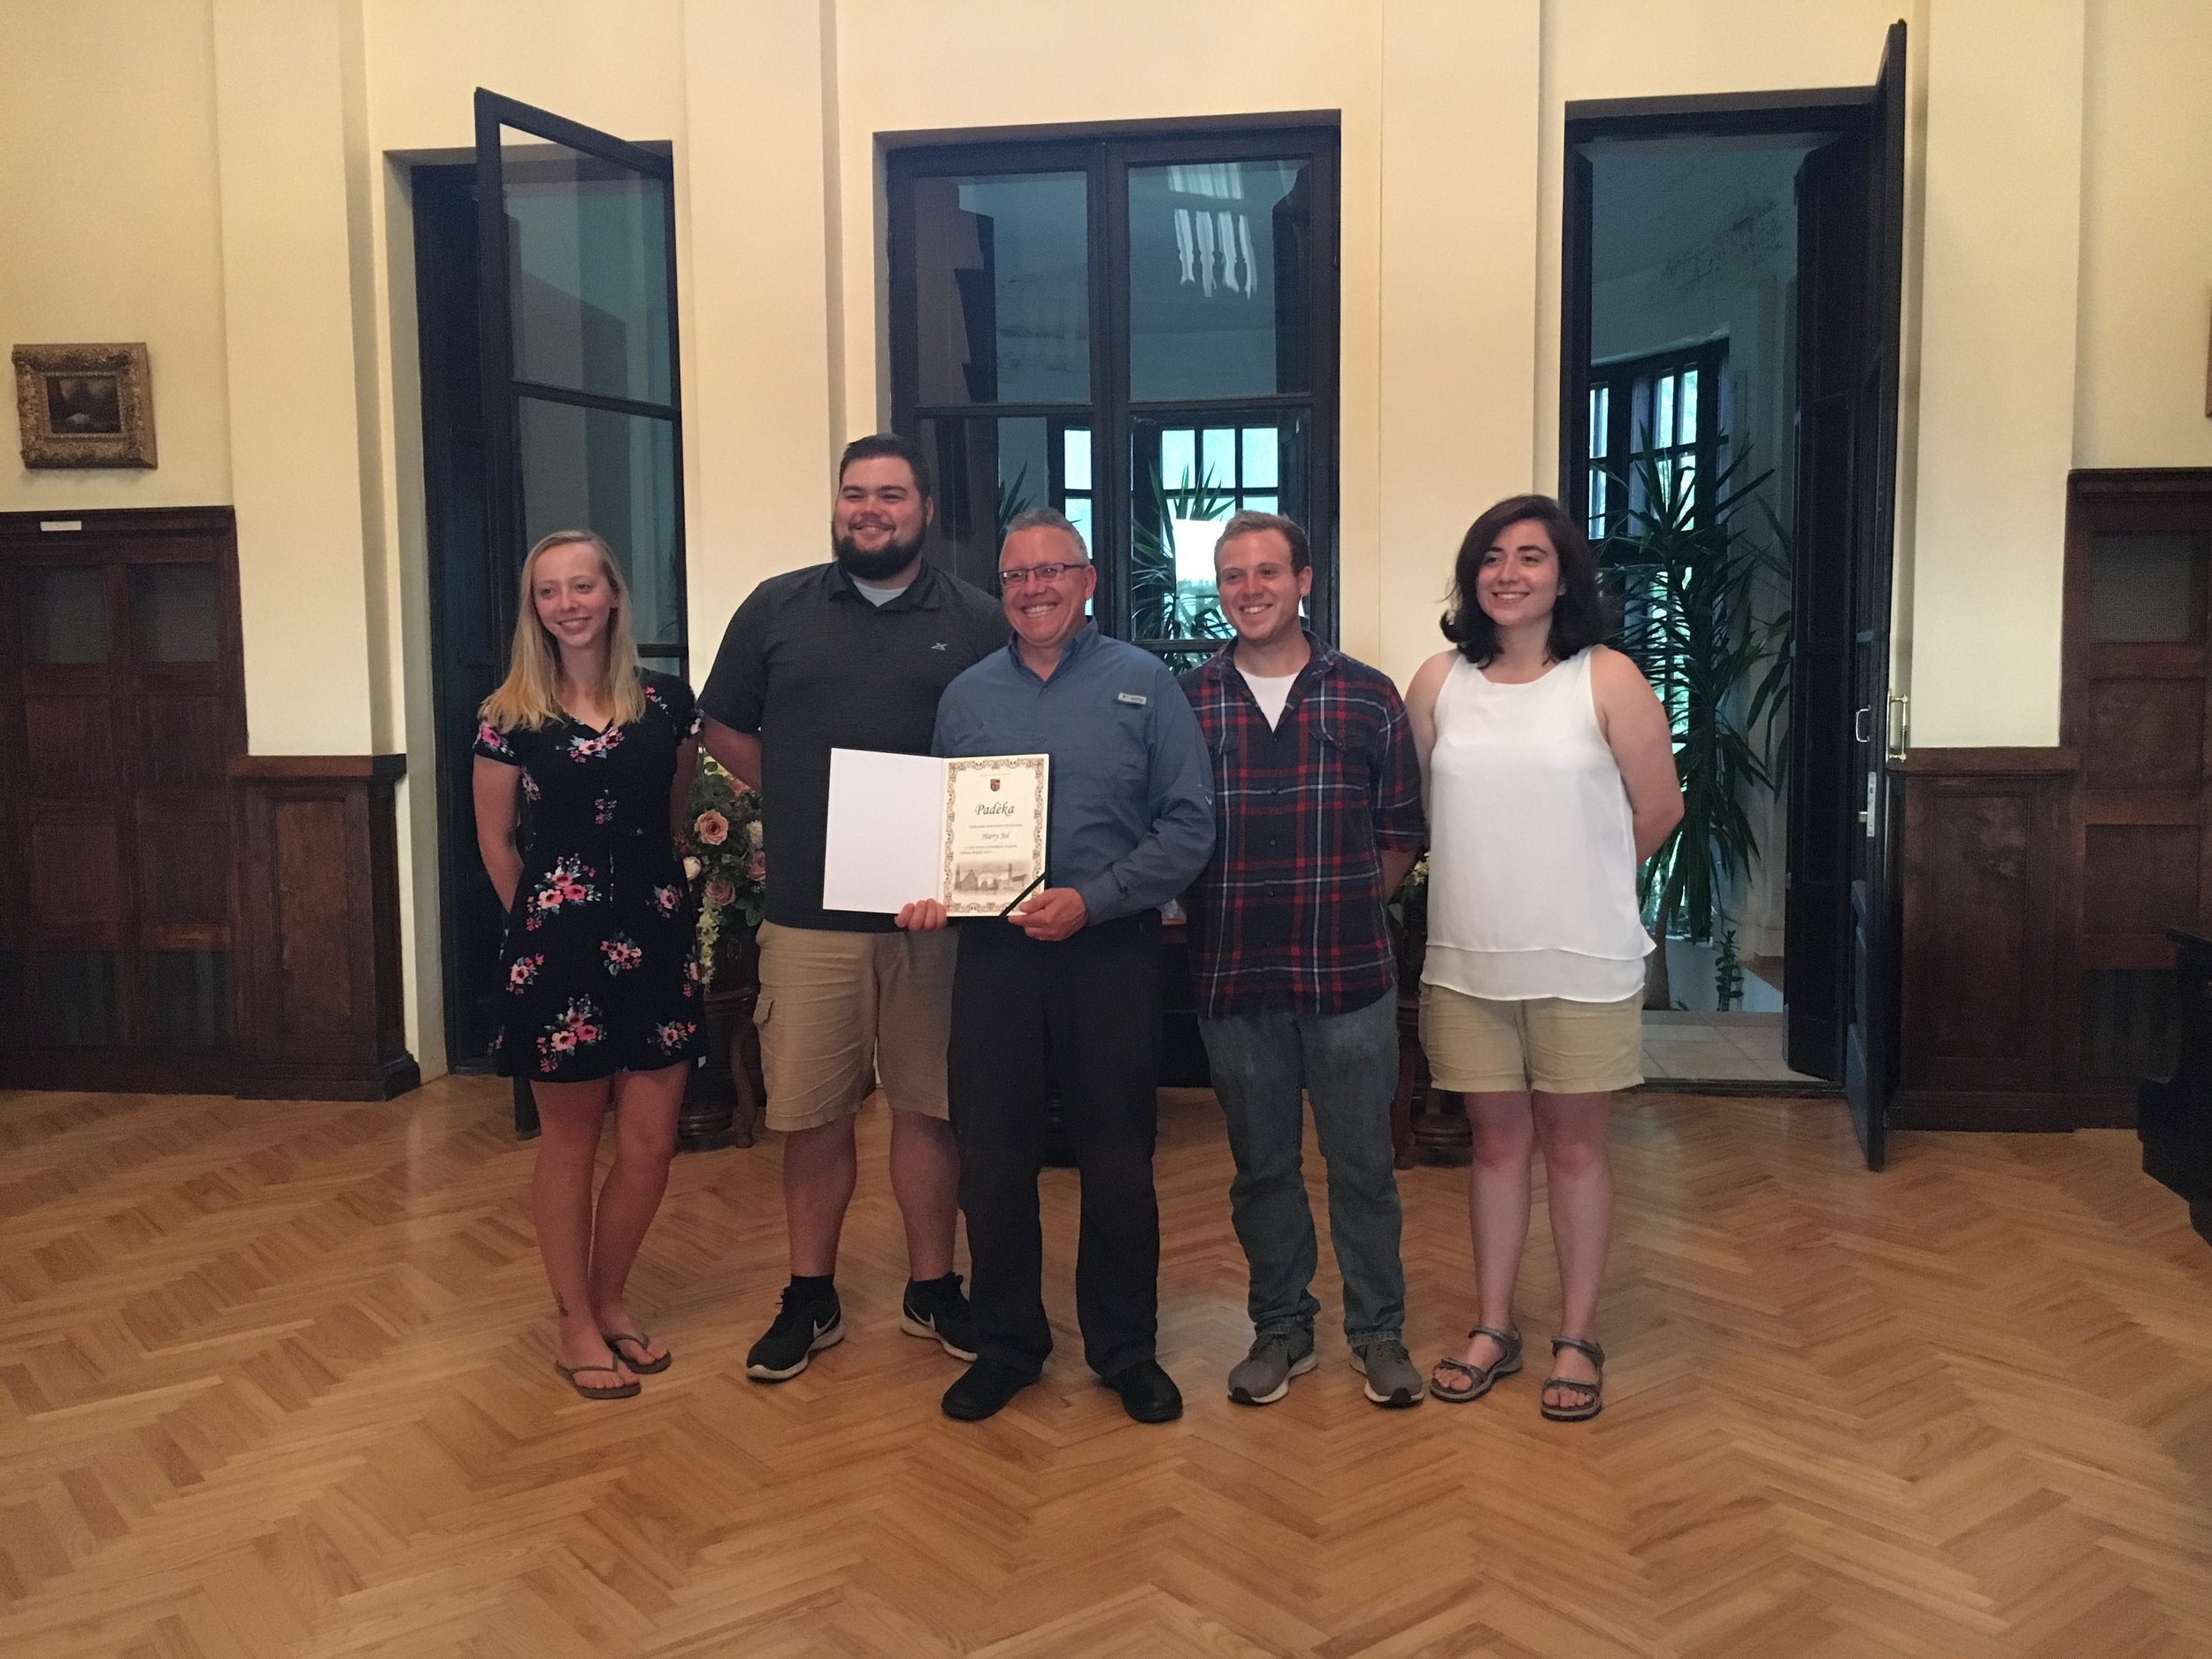 Jol, accompanied by students, receives international award for work in Rokiskis, Lithuania. Summer 2018